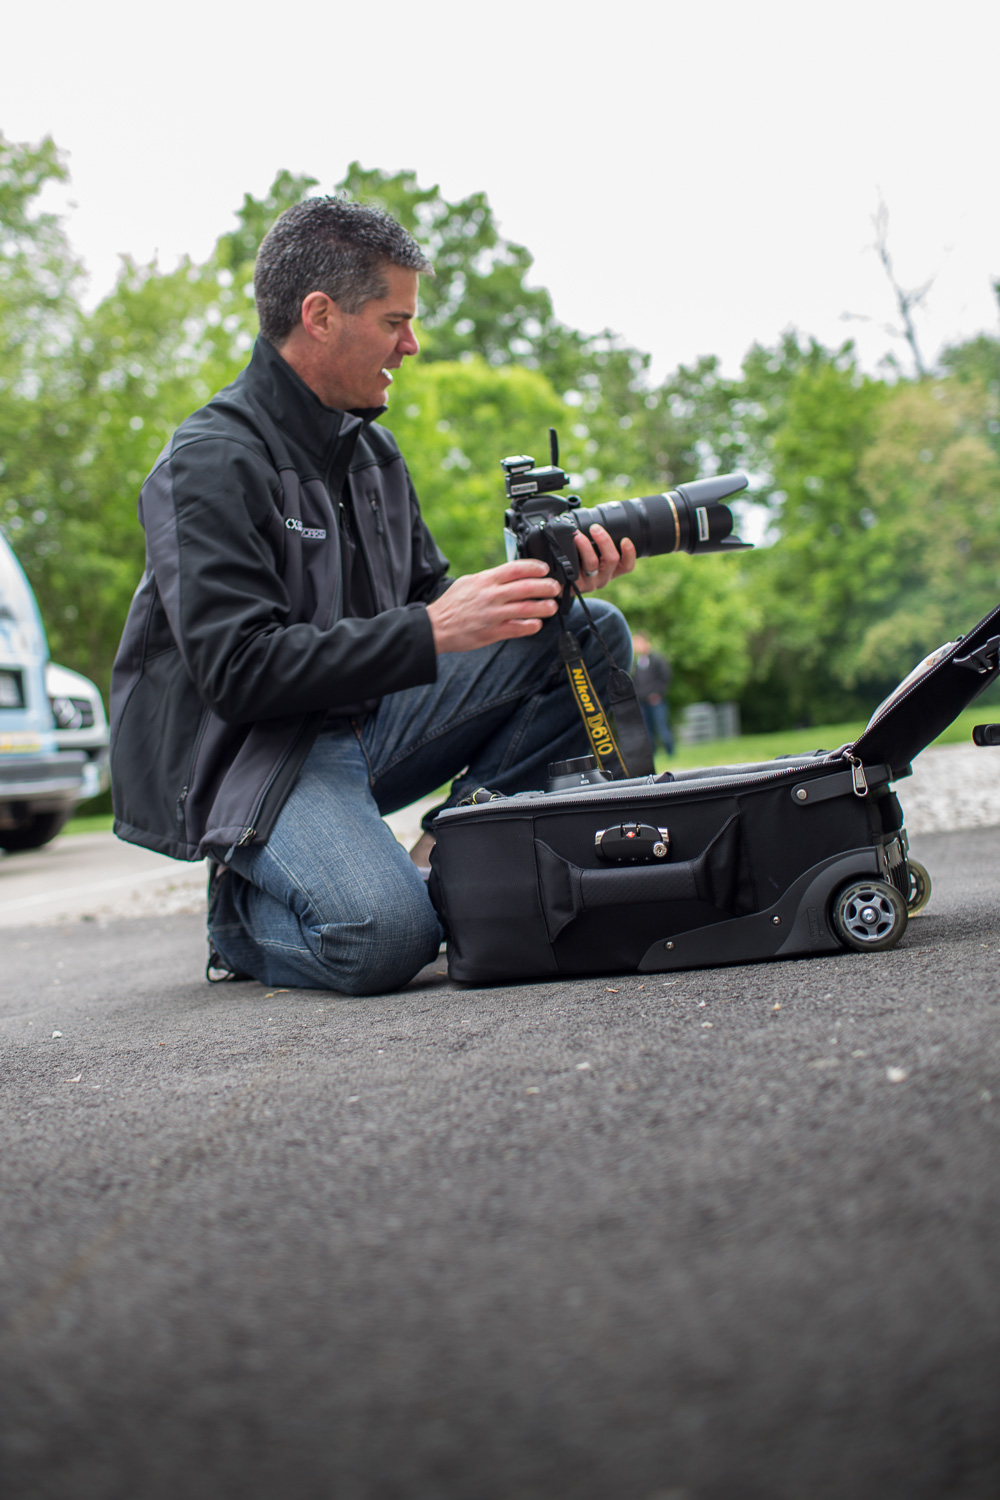 Commercial Photography Behind The Scenes at A&D in Indianapolis - Changing Lenses